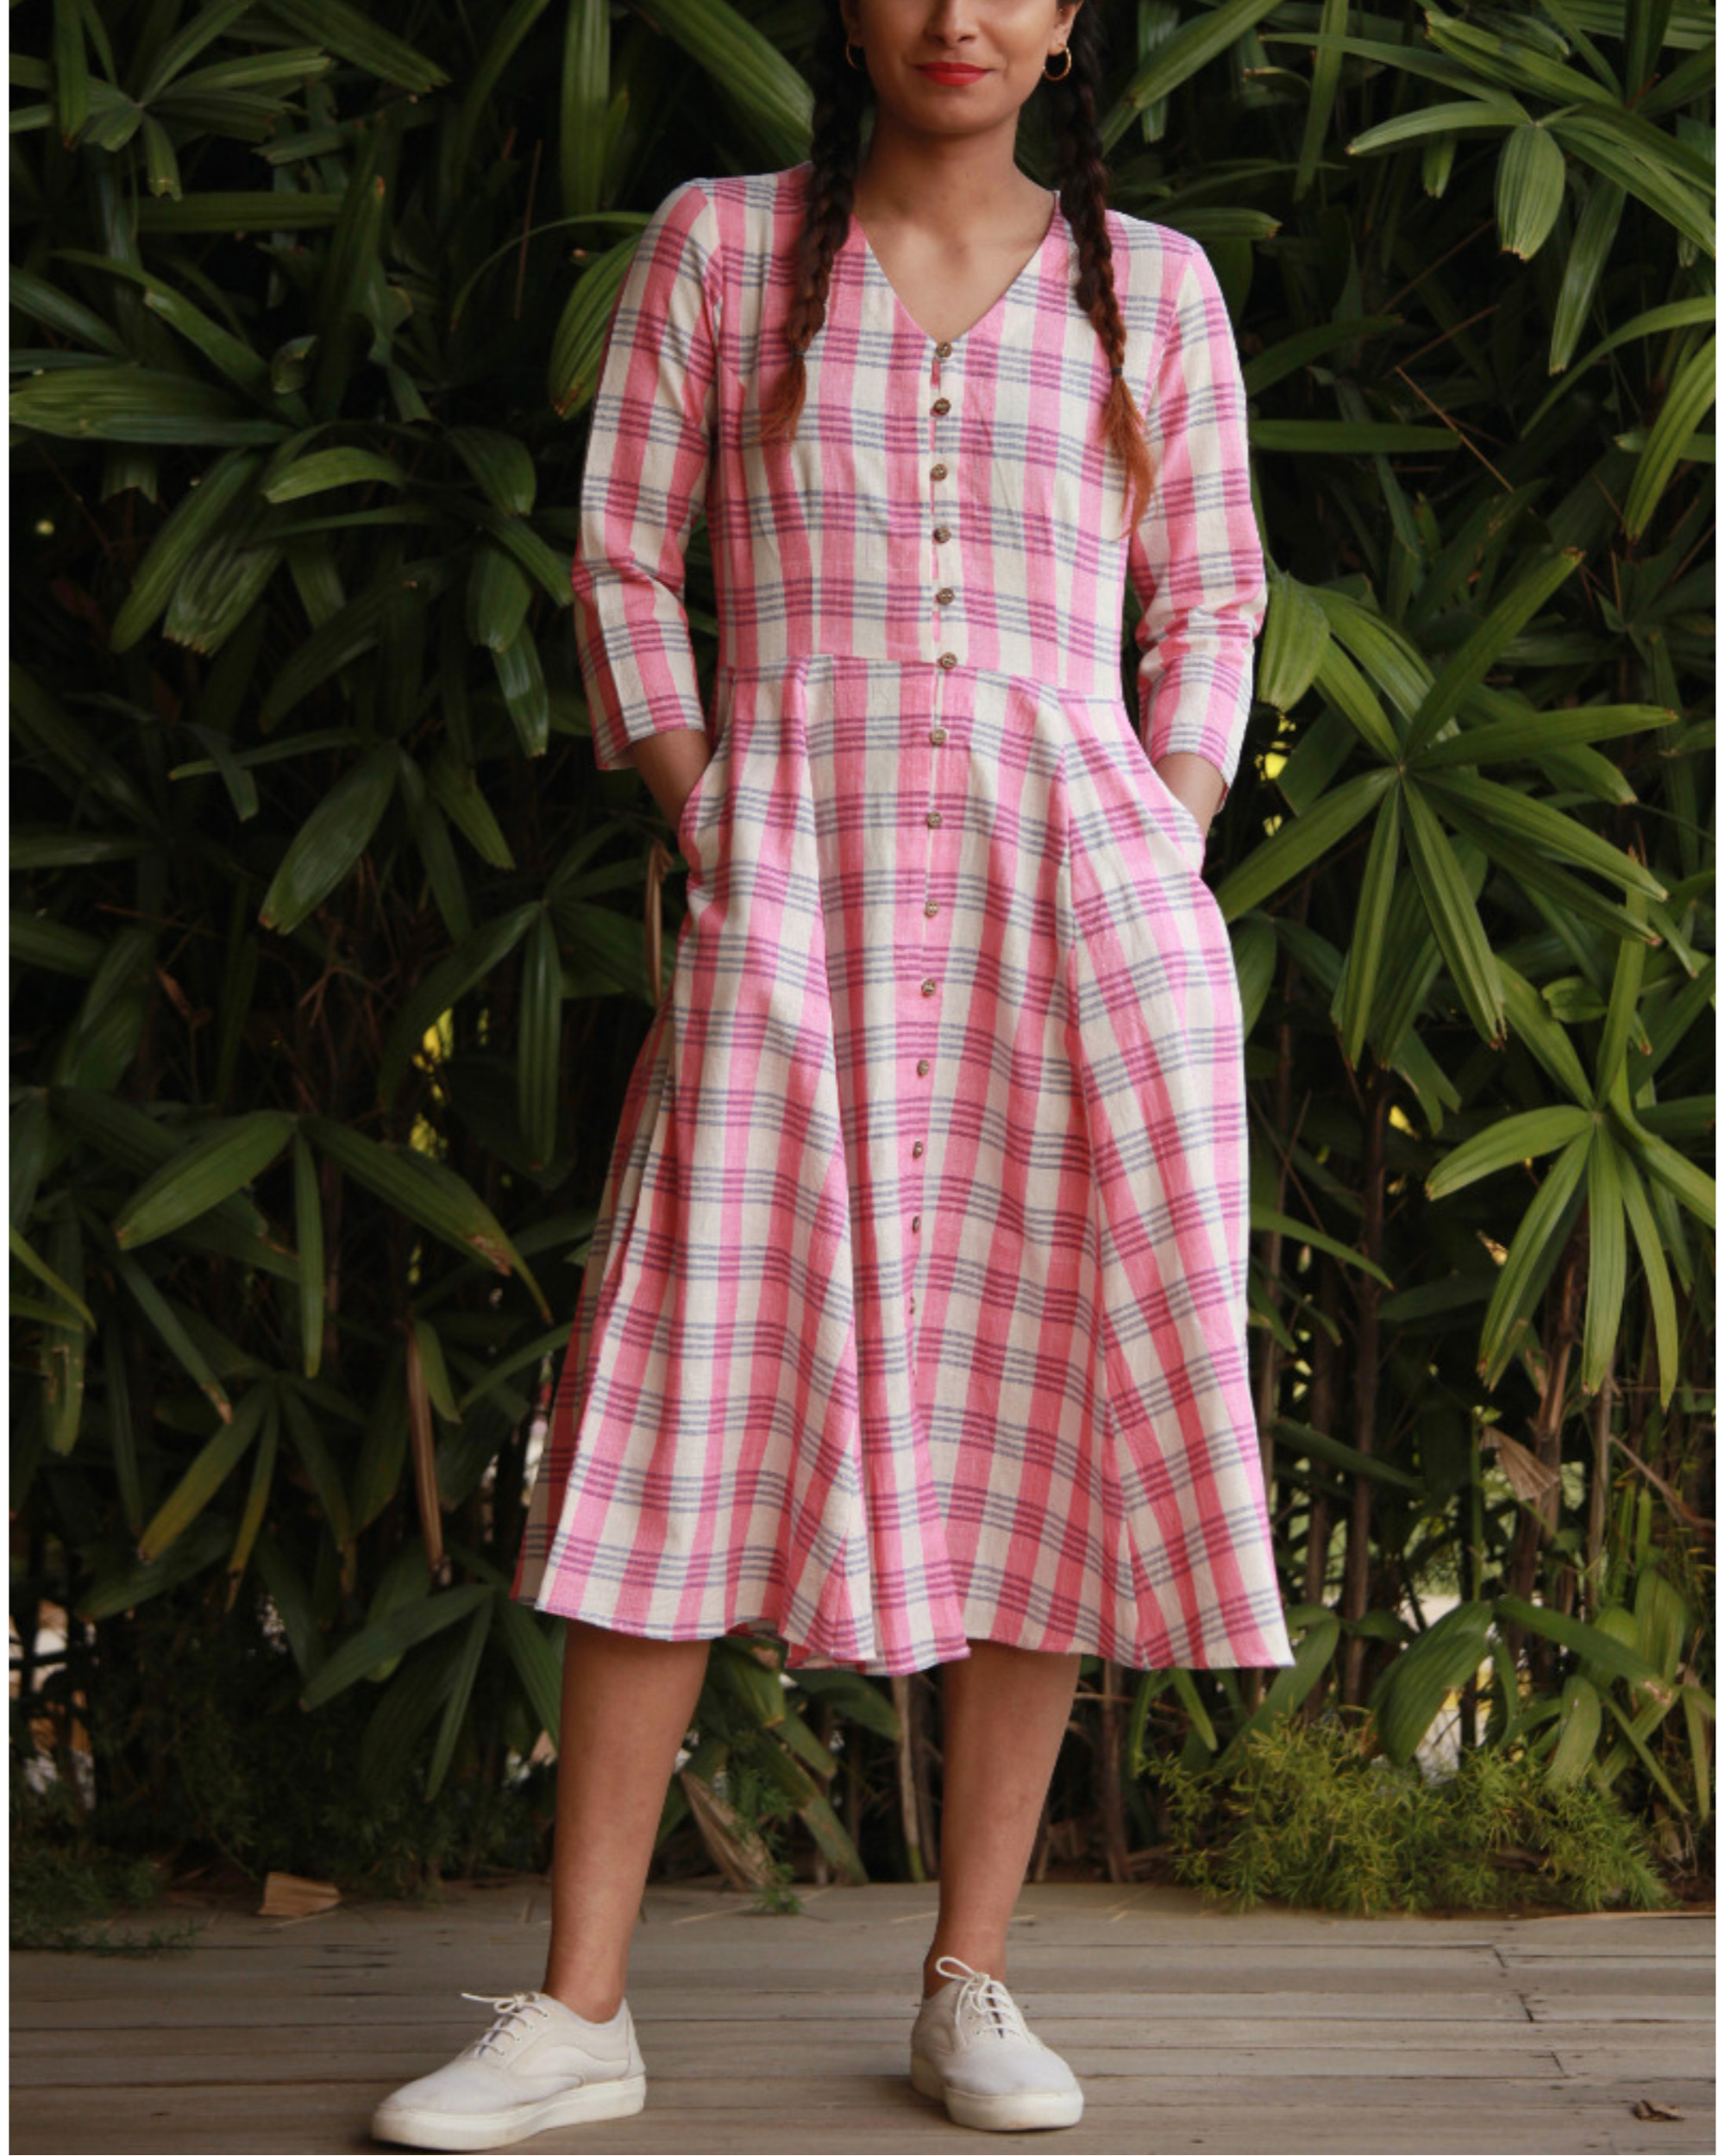 Quirky pink checks dress